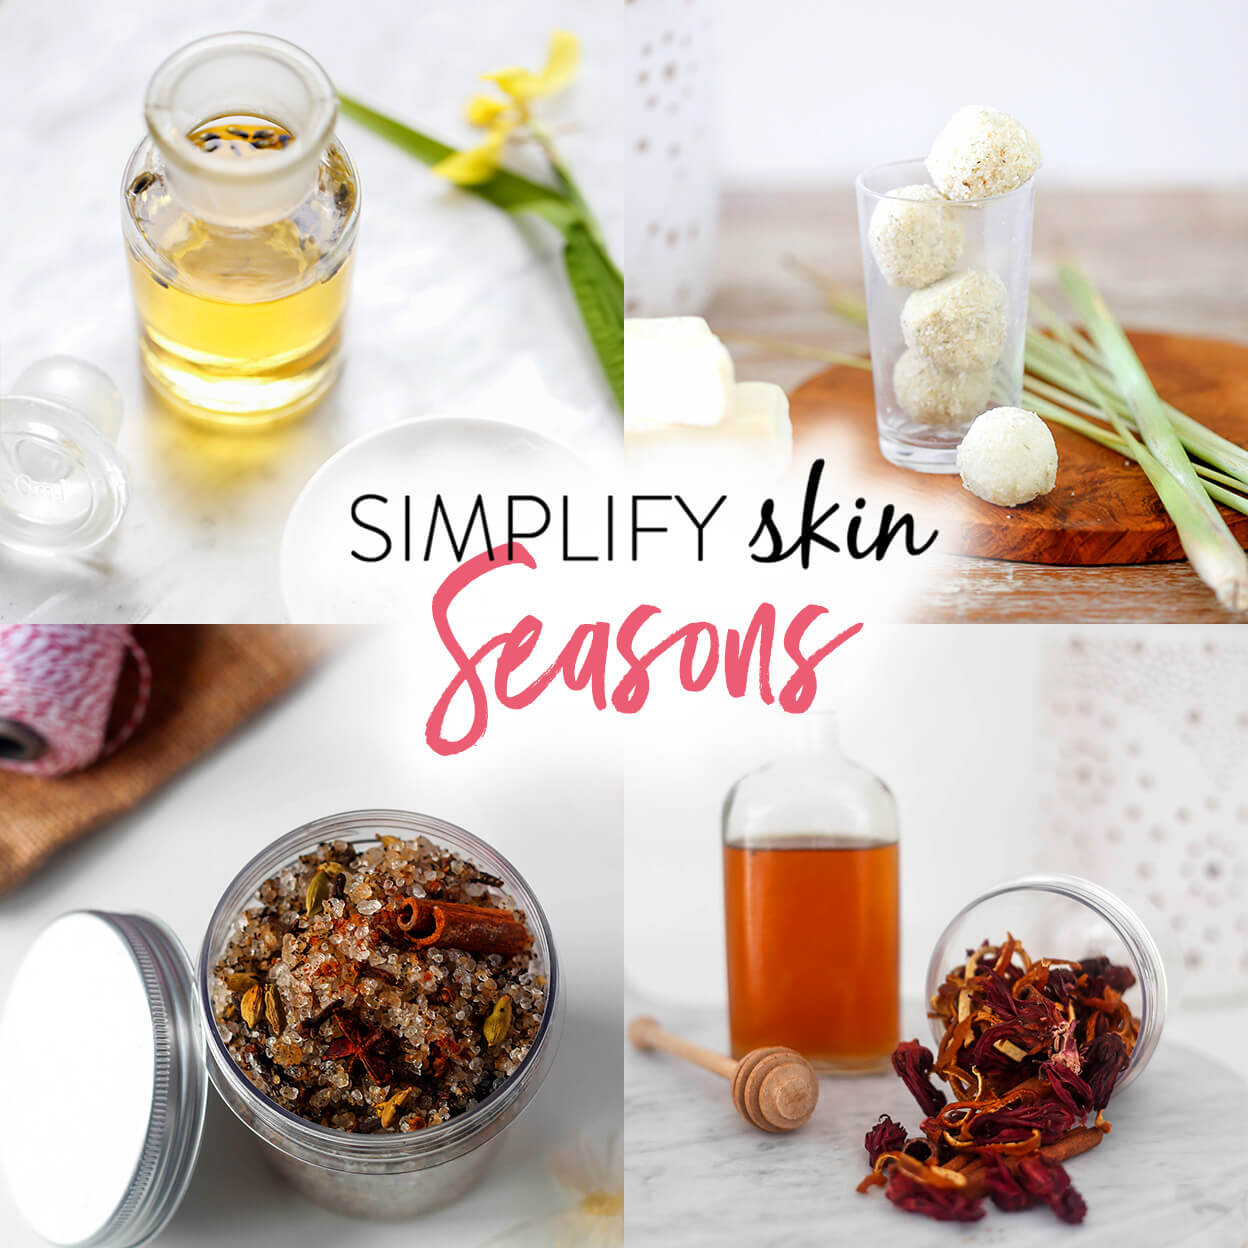 SIMPLIFY Skin SEASONS: All natural self-made skincare, year-round | littlegreendot.com